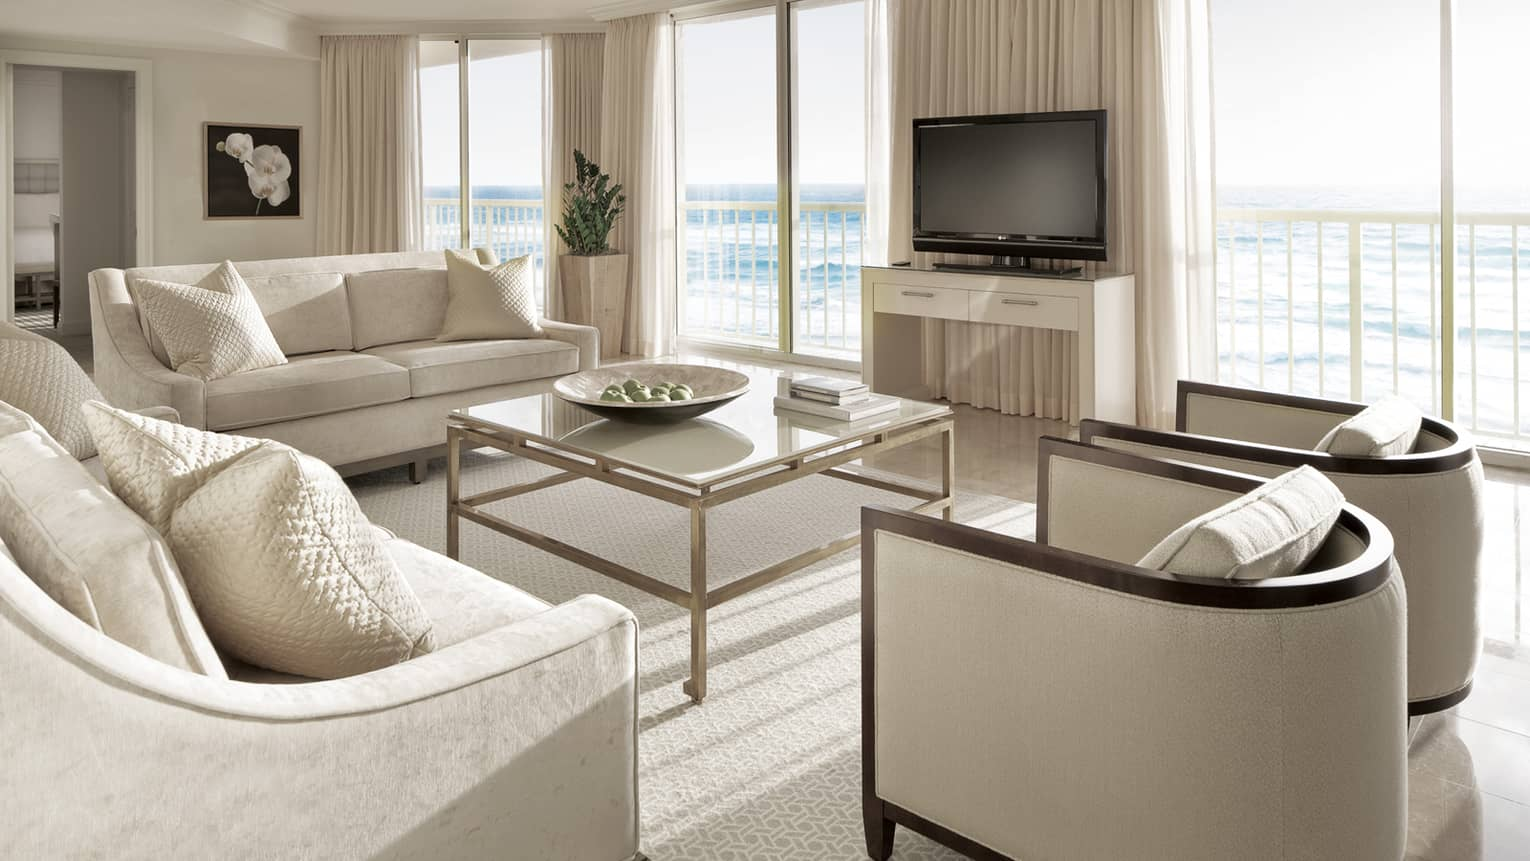 Deluxe Oceanfront Suite with white sofas and armchairs, glass coffee table, juliet balcony, ocean view